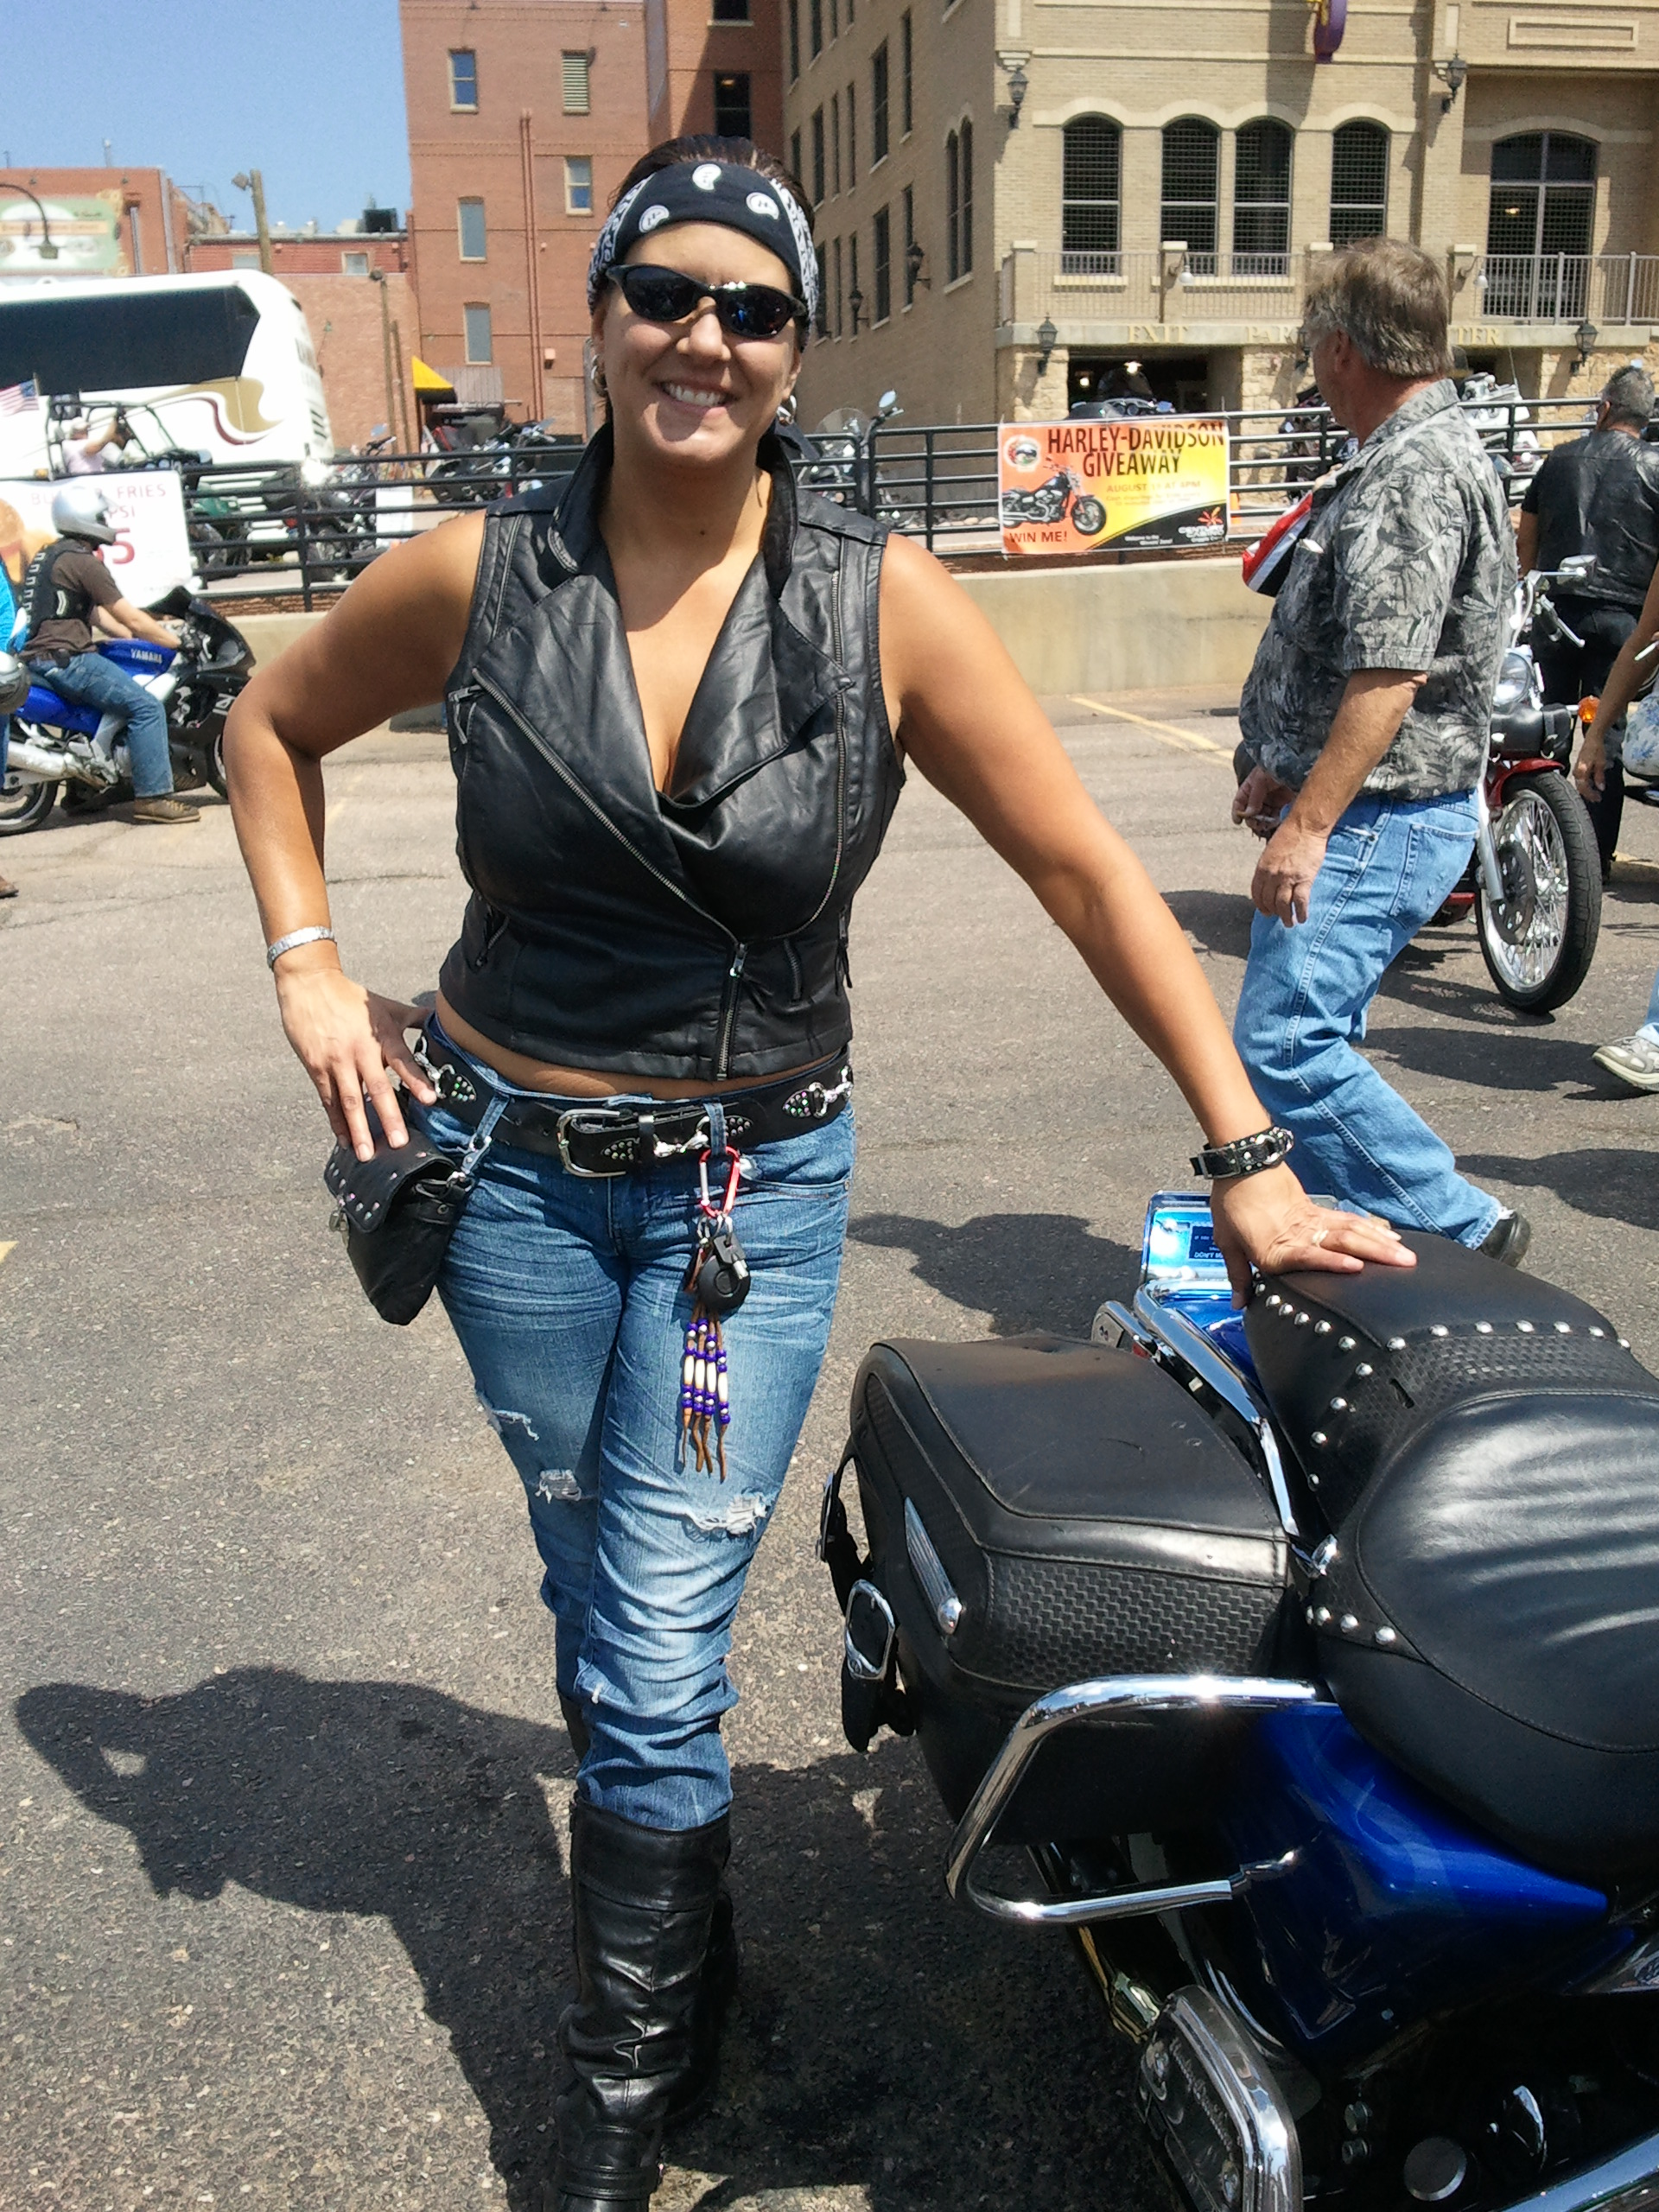 are motorcycle chicks  Biker Chicks | eBikerLeather Official Blog